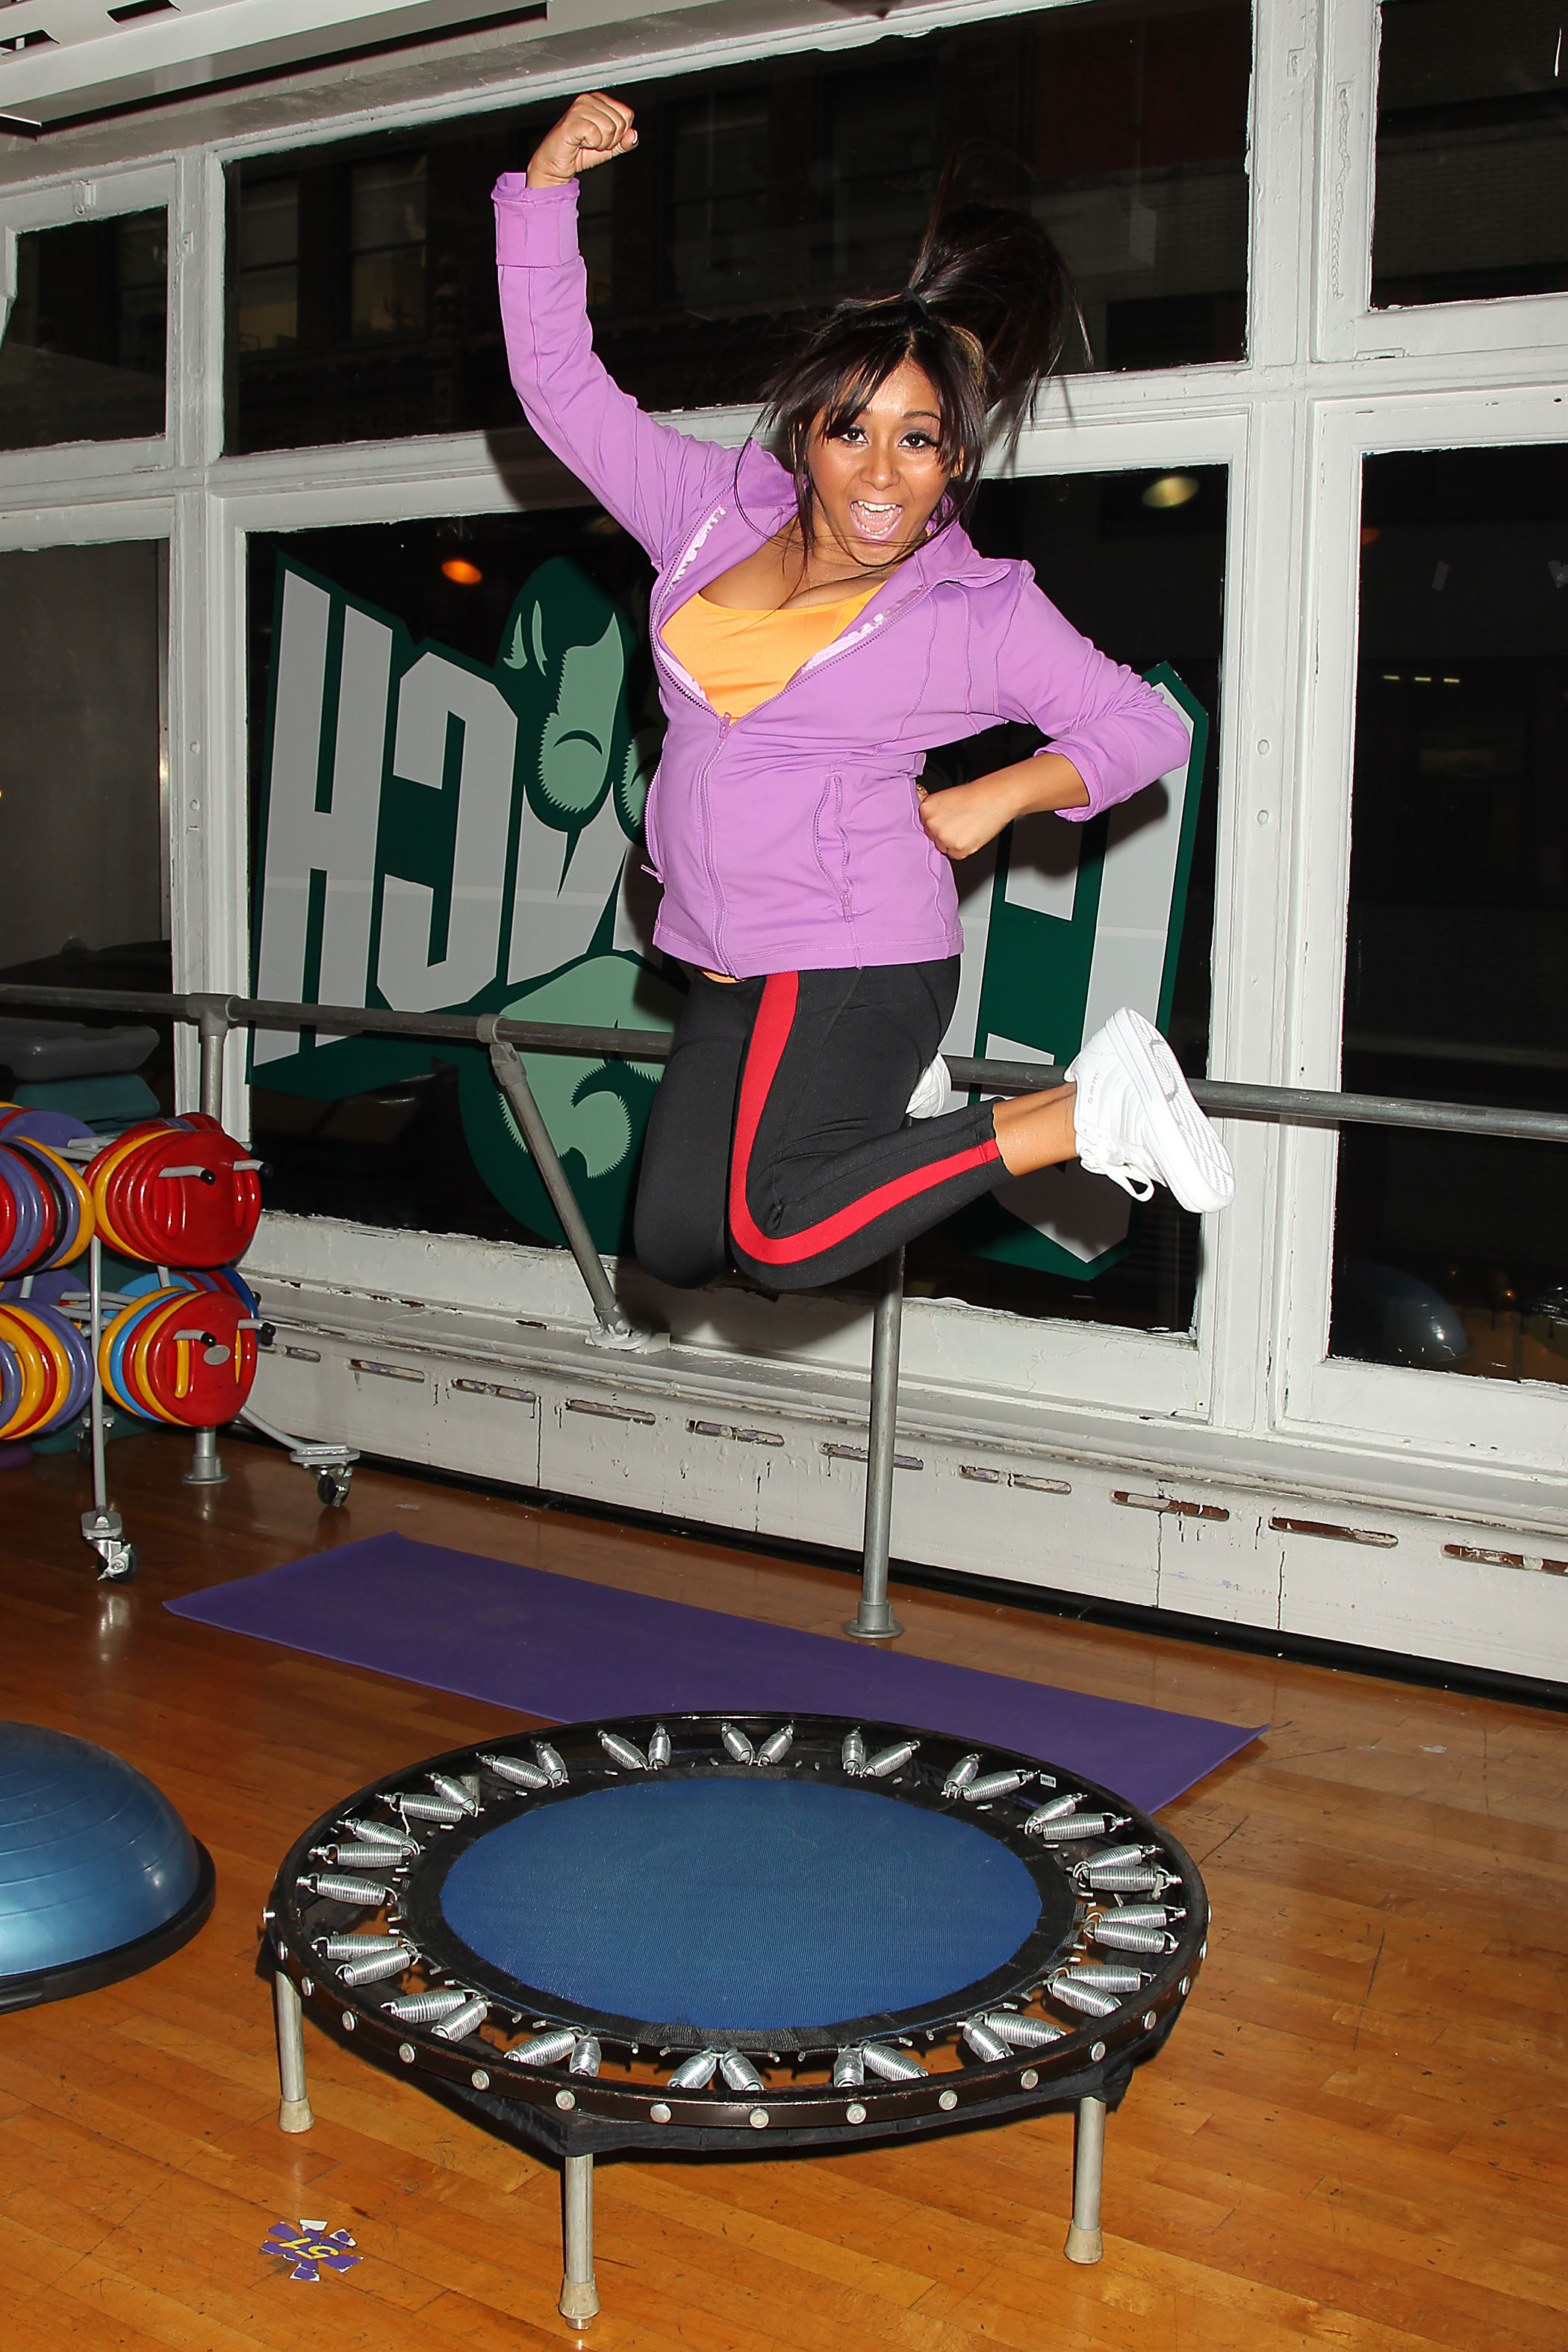 Snooki At the Gym (Tanned; Likely Not Laundered)